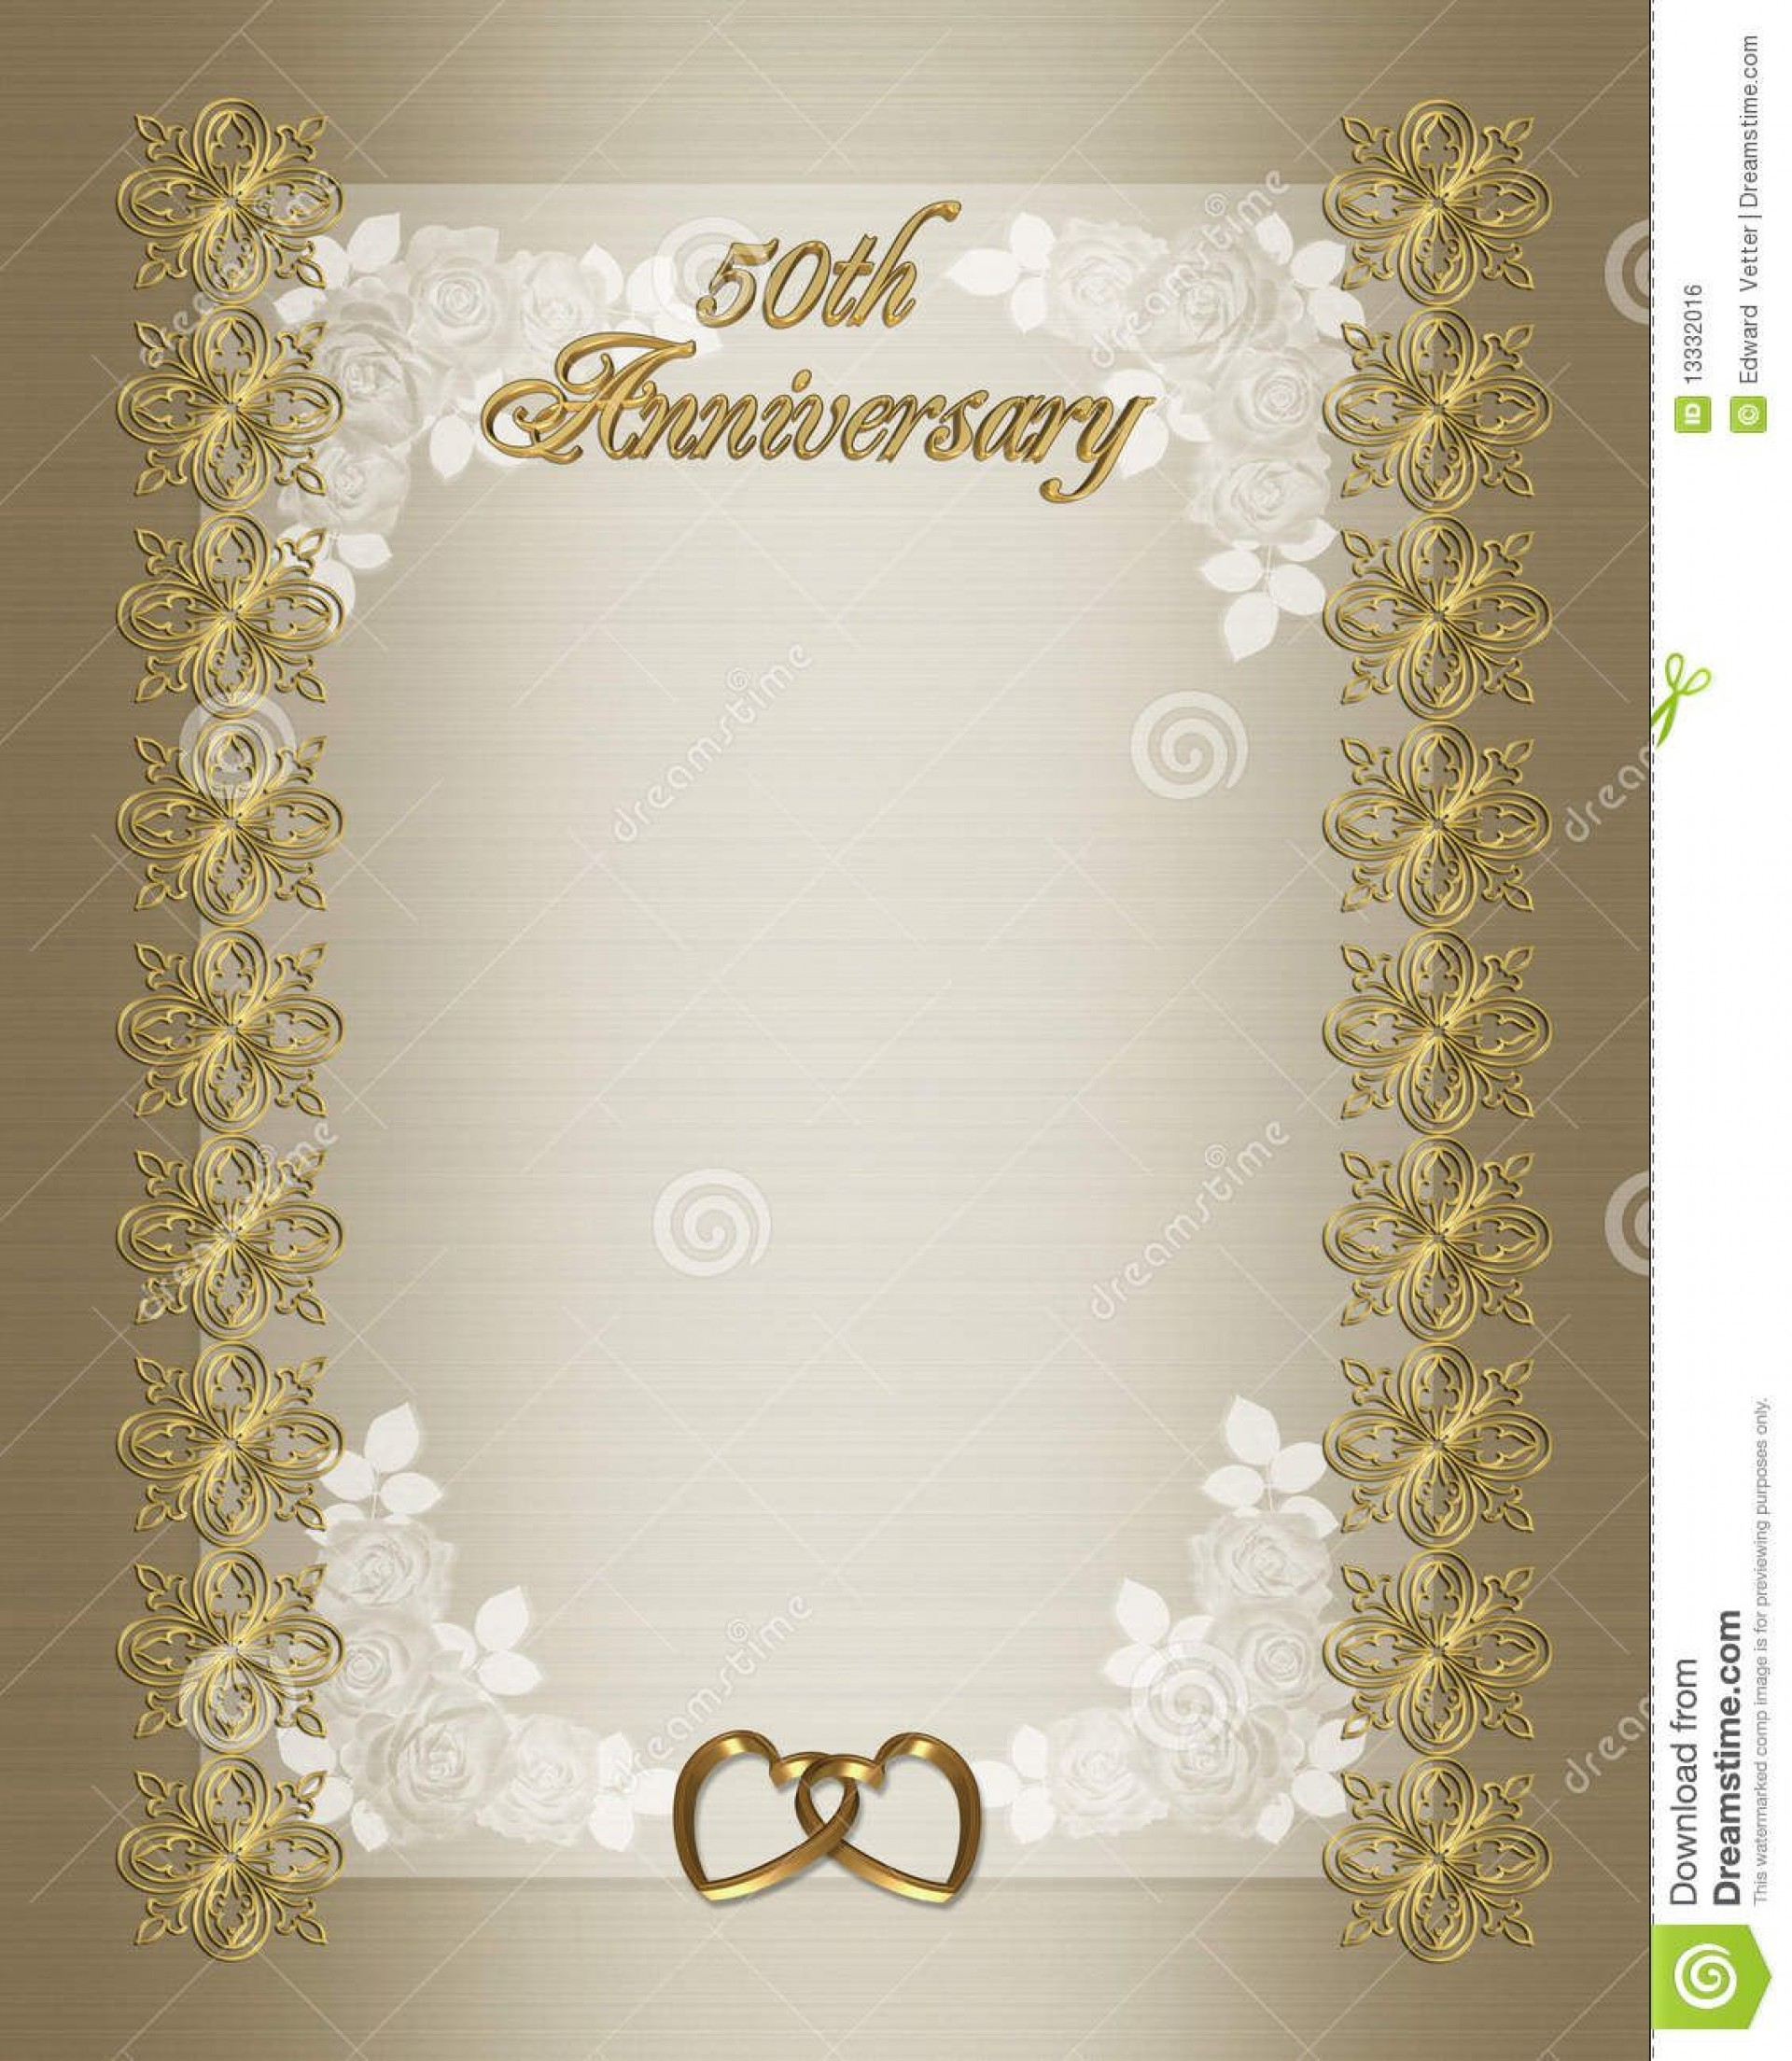 007 Breathtaking 50th Anniversary Invitation Template Free High Resolution  For Word Golden Wedding Download1920